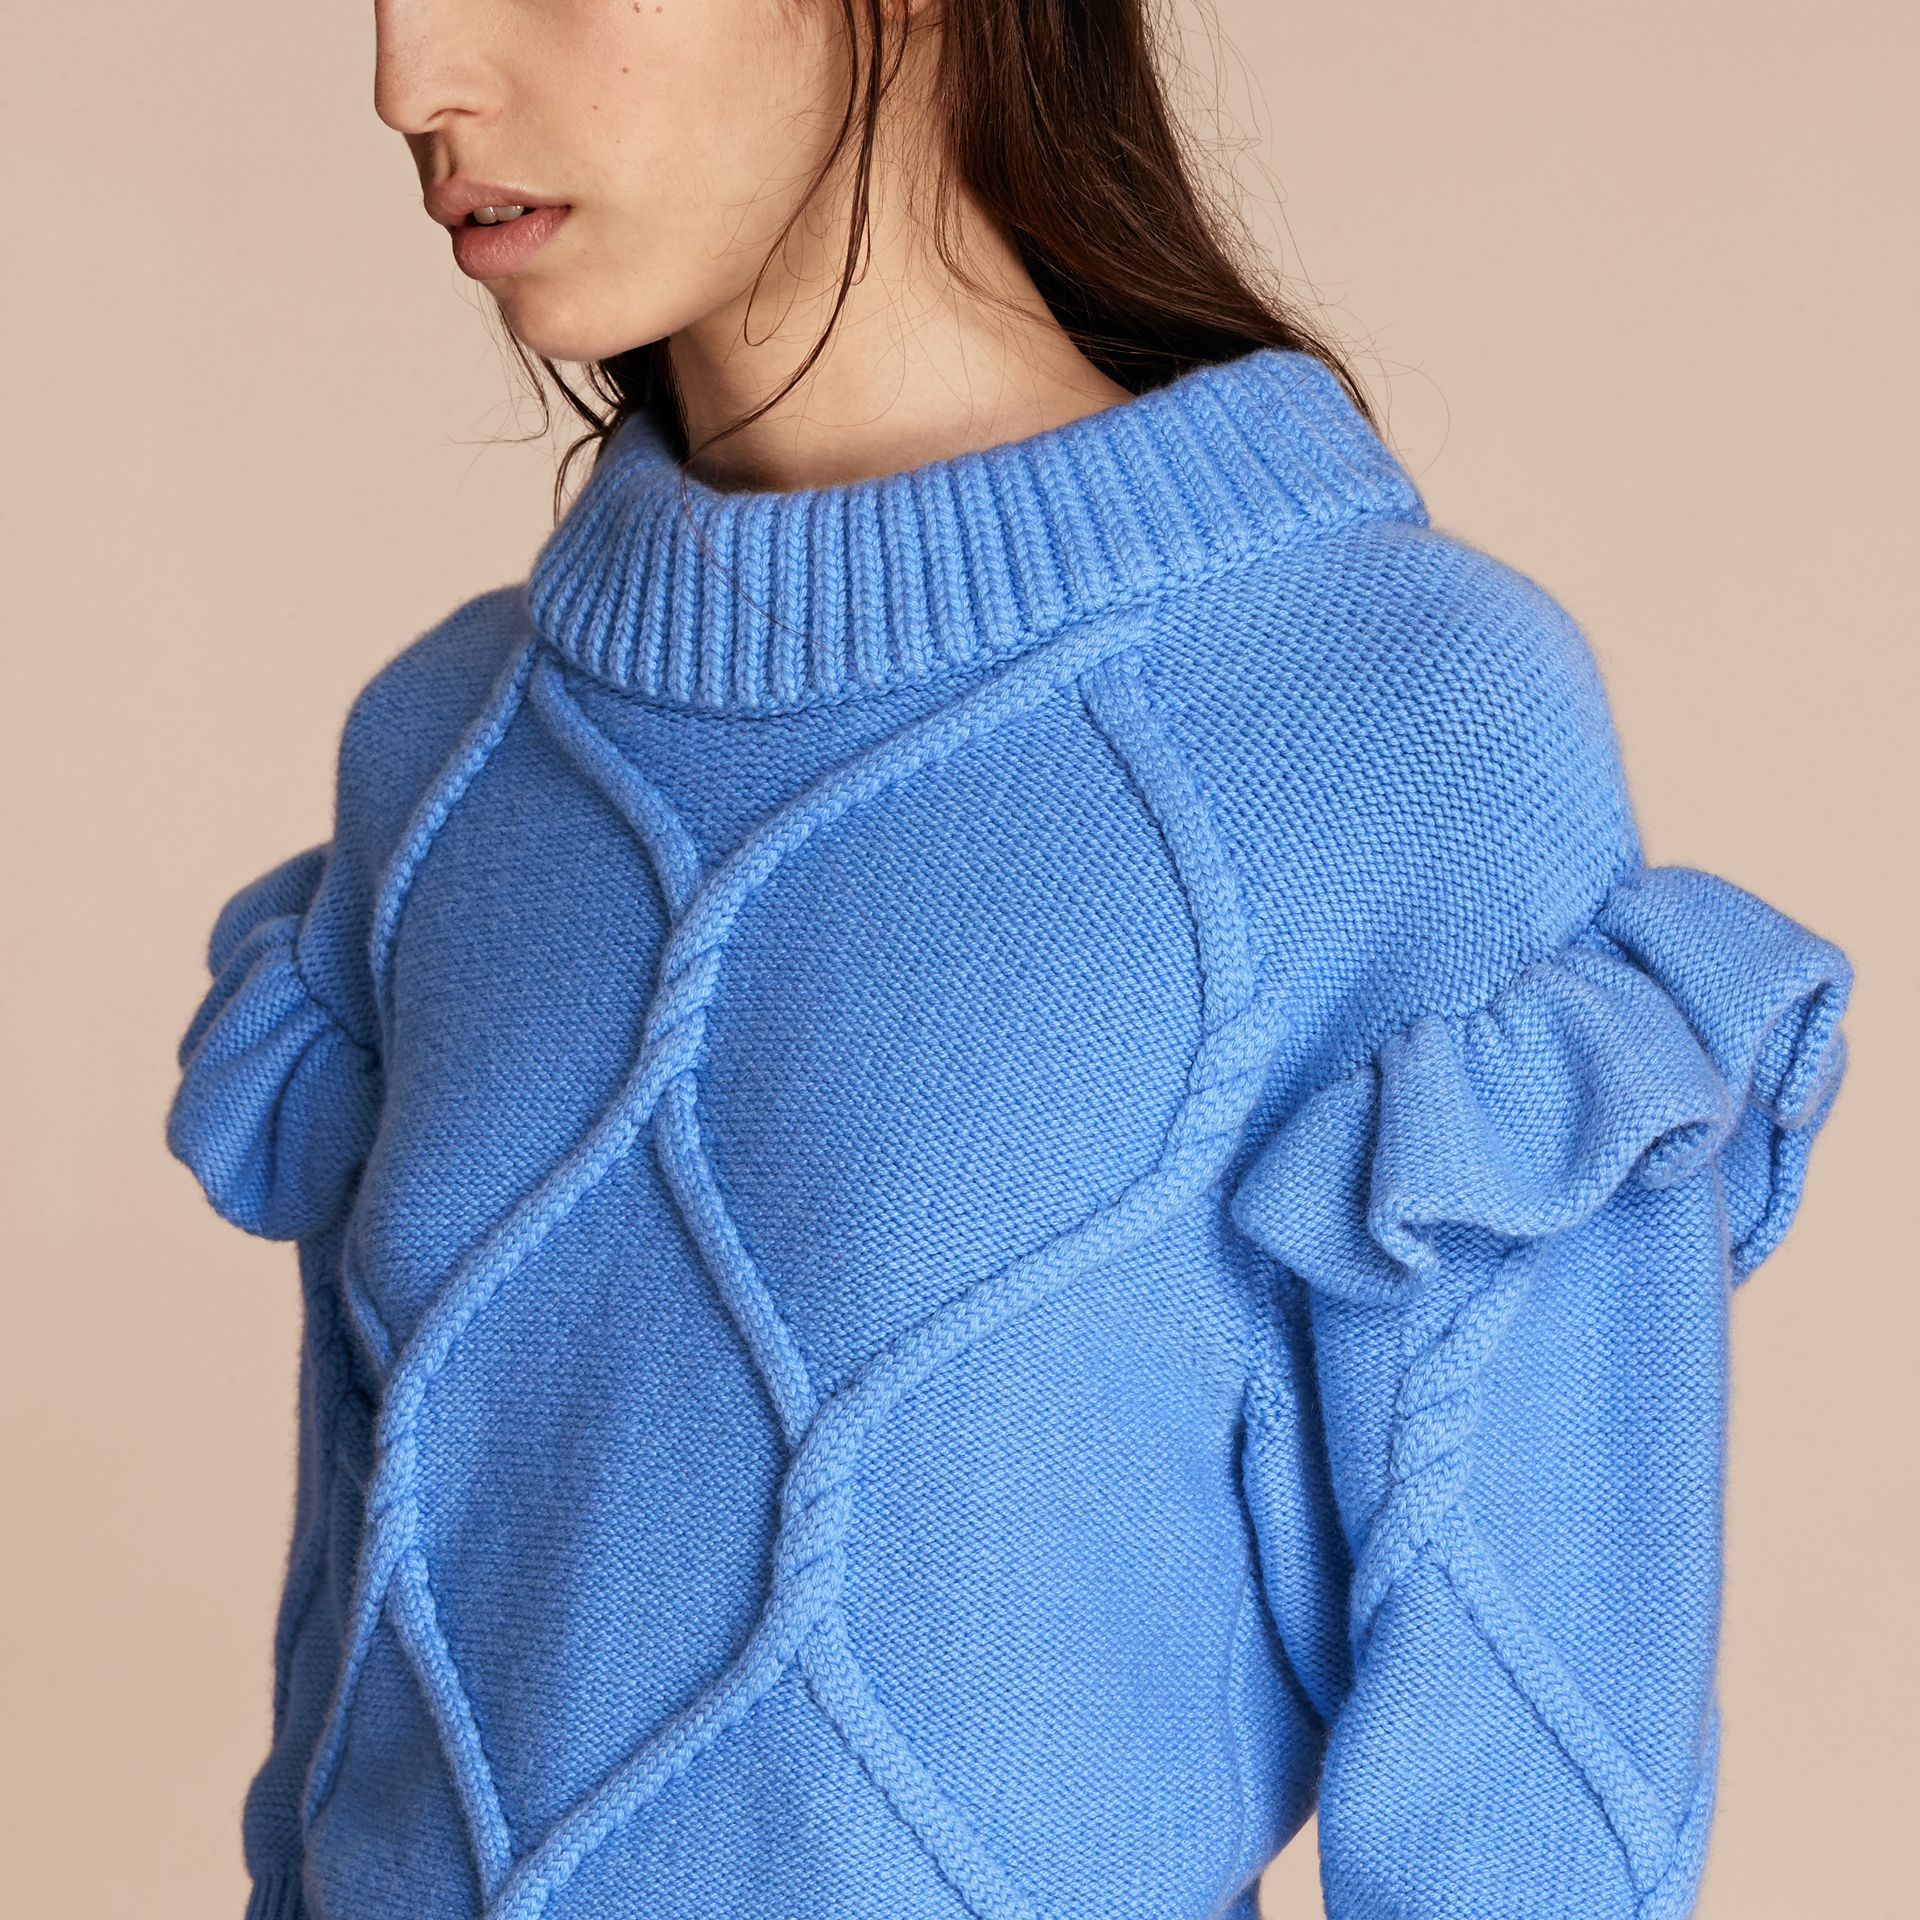 Hydrangia blue Ruffle-sleeved Cable Knit Wool Cashmere Sweater - gallery image 5